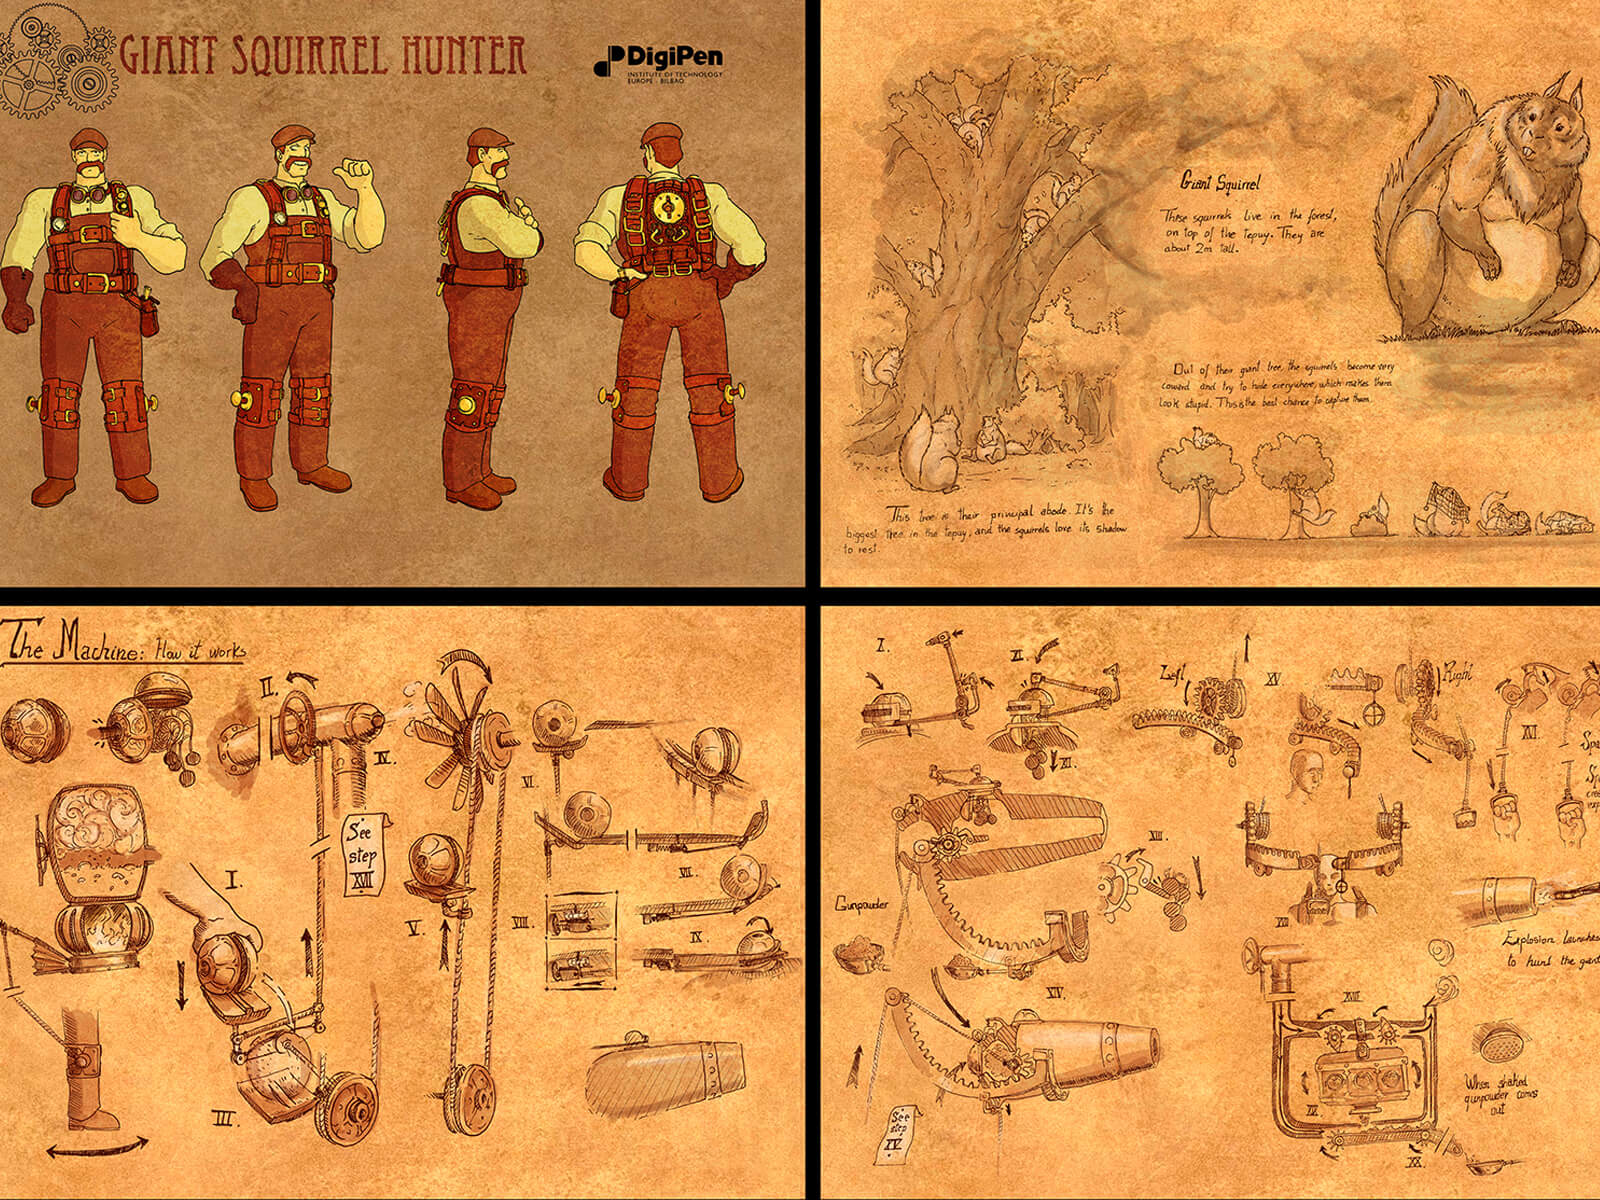 Sepia-toned concept art of a squirrel hunter character, his mechanical equipment, and a description of giant squirrel beasts.